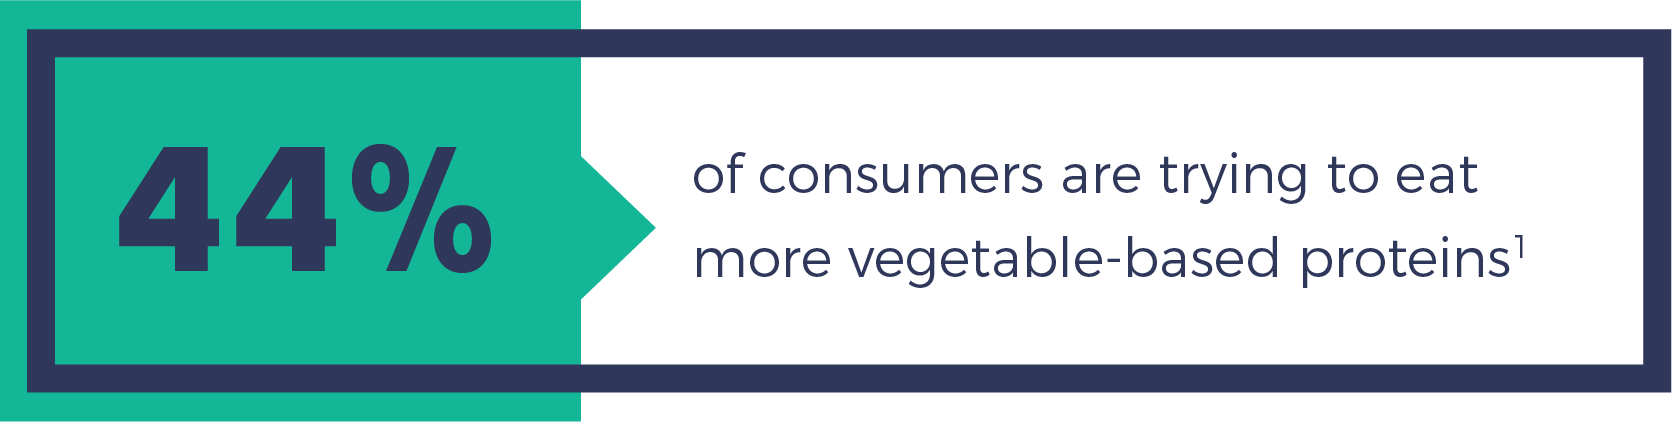 44% of consumers are trying to eat more vegetable-based proteins.